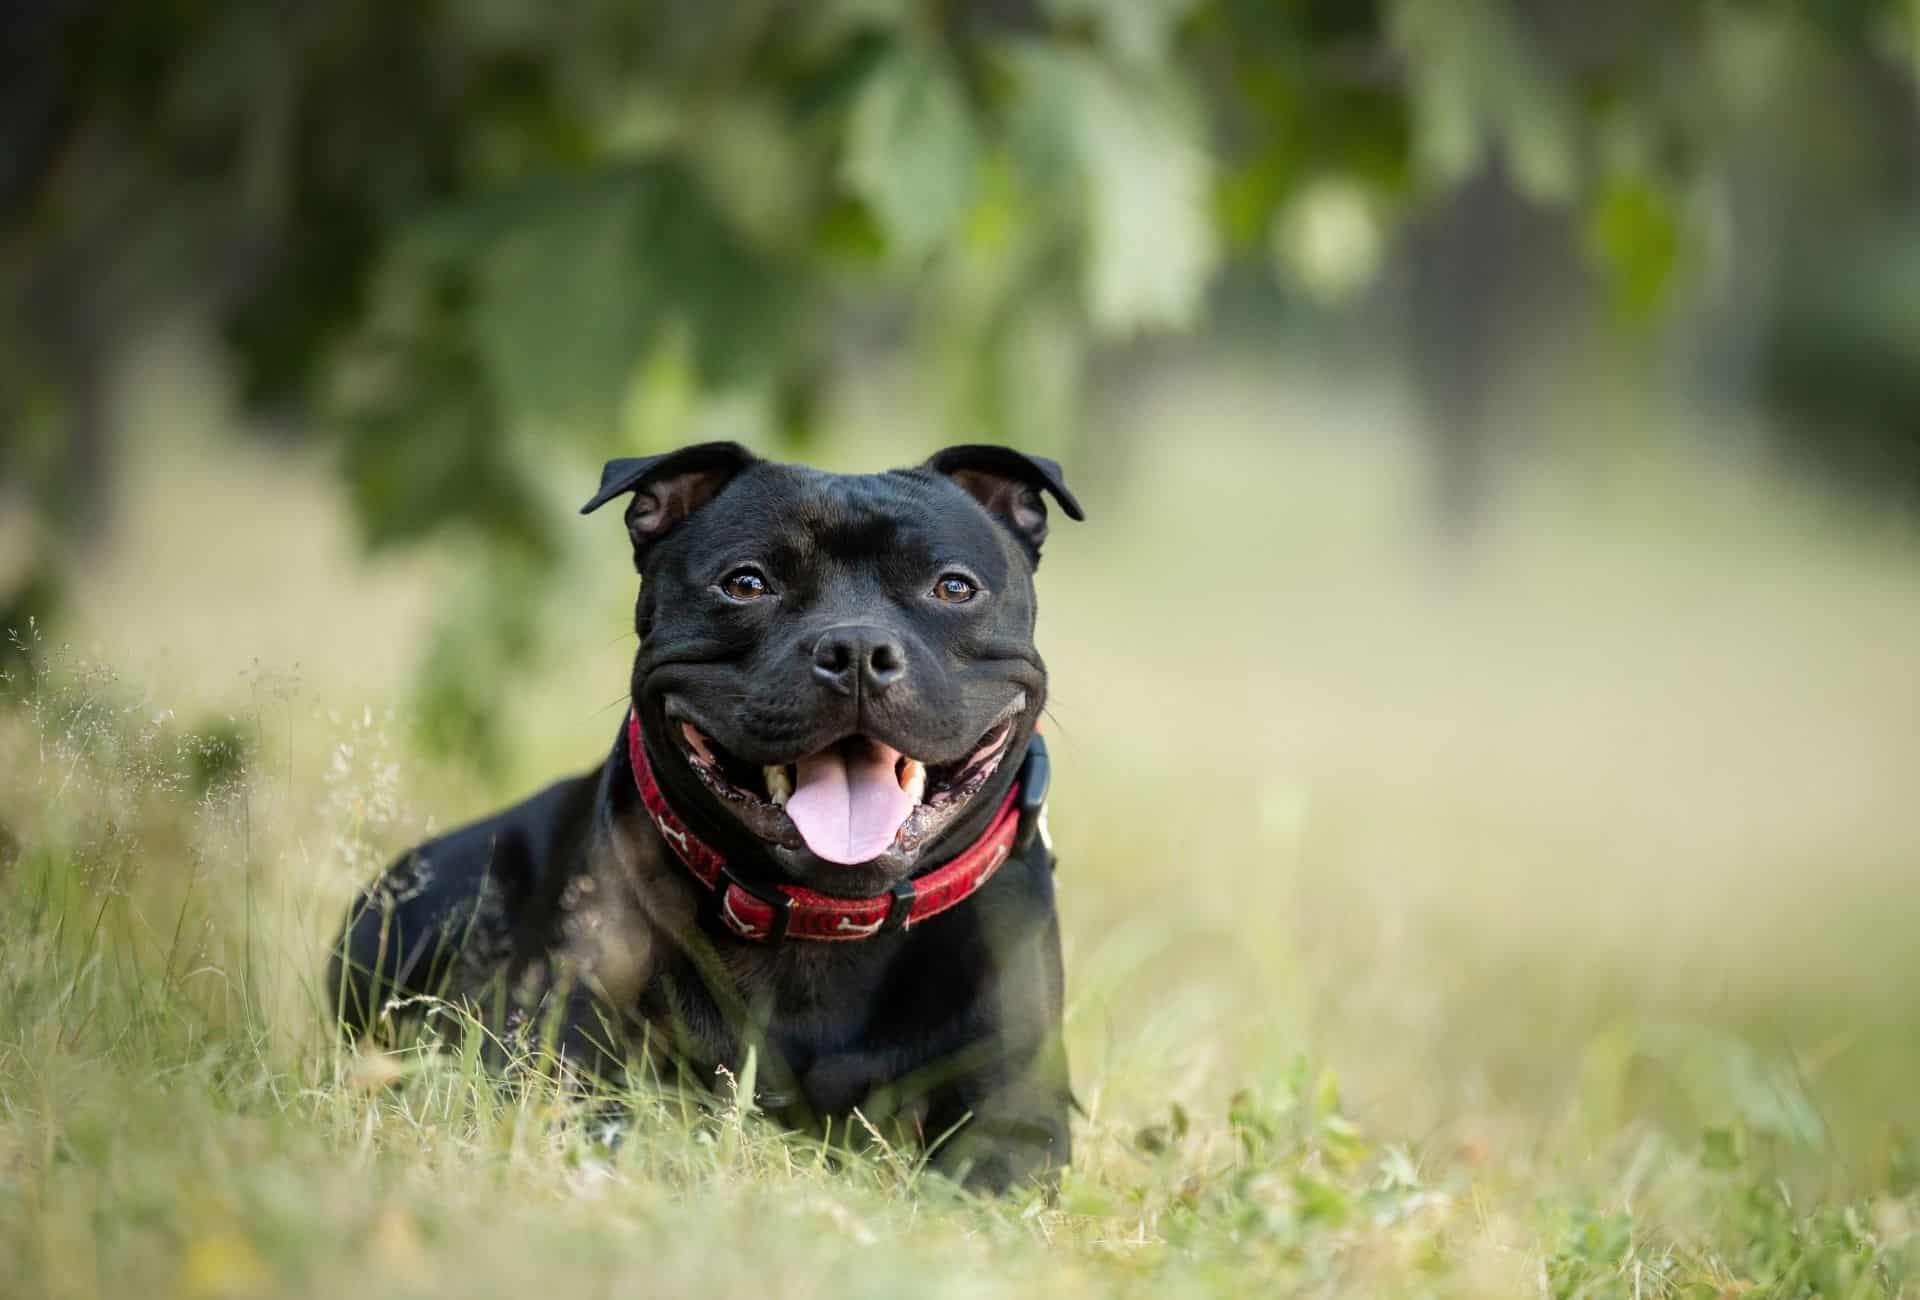 Staffordshire Bullterrier as best guard dog for first time dog owners.